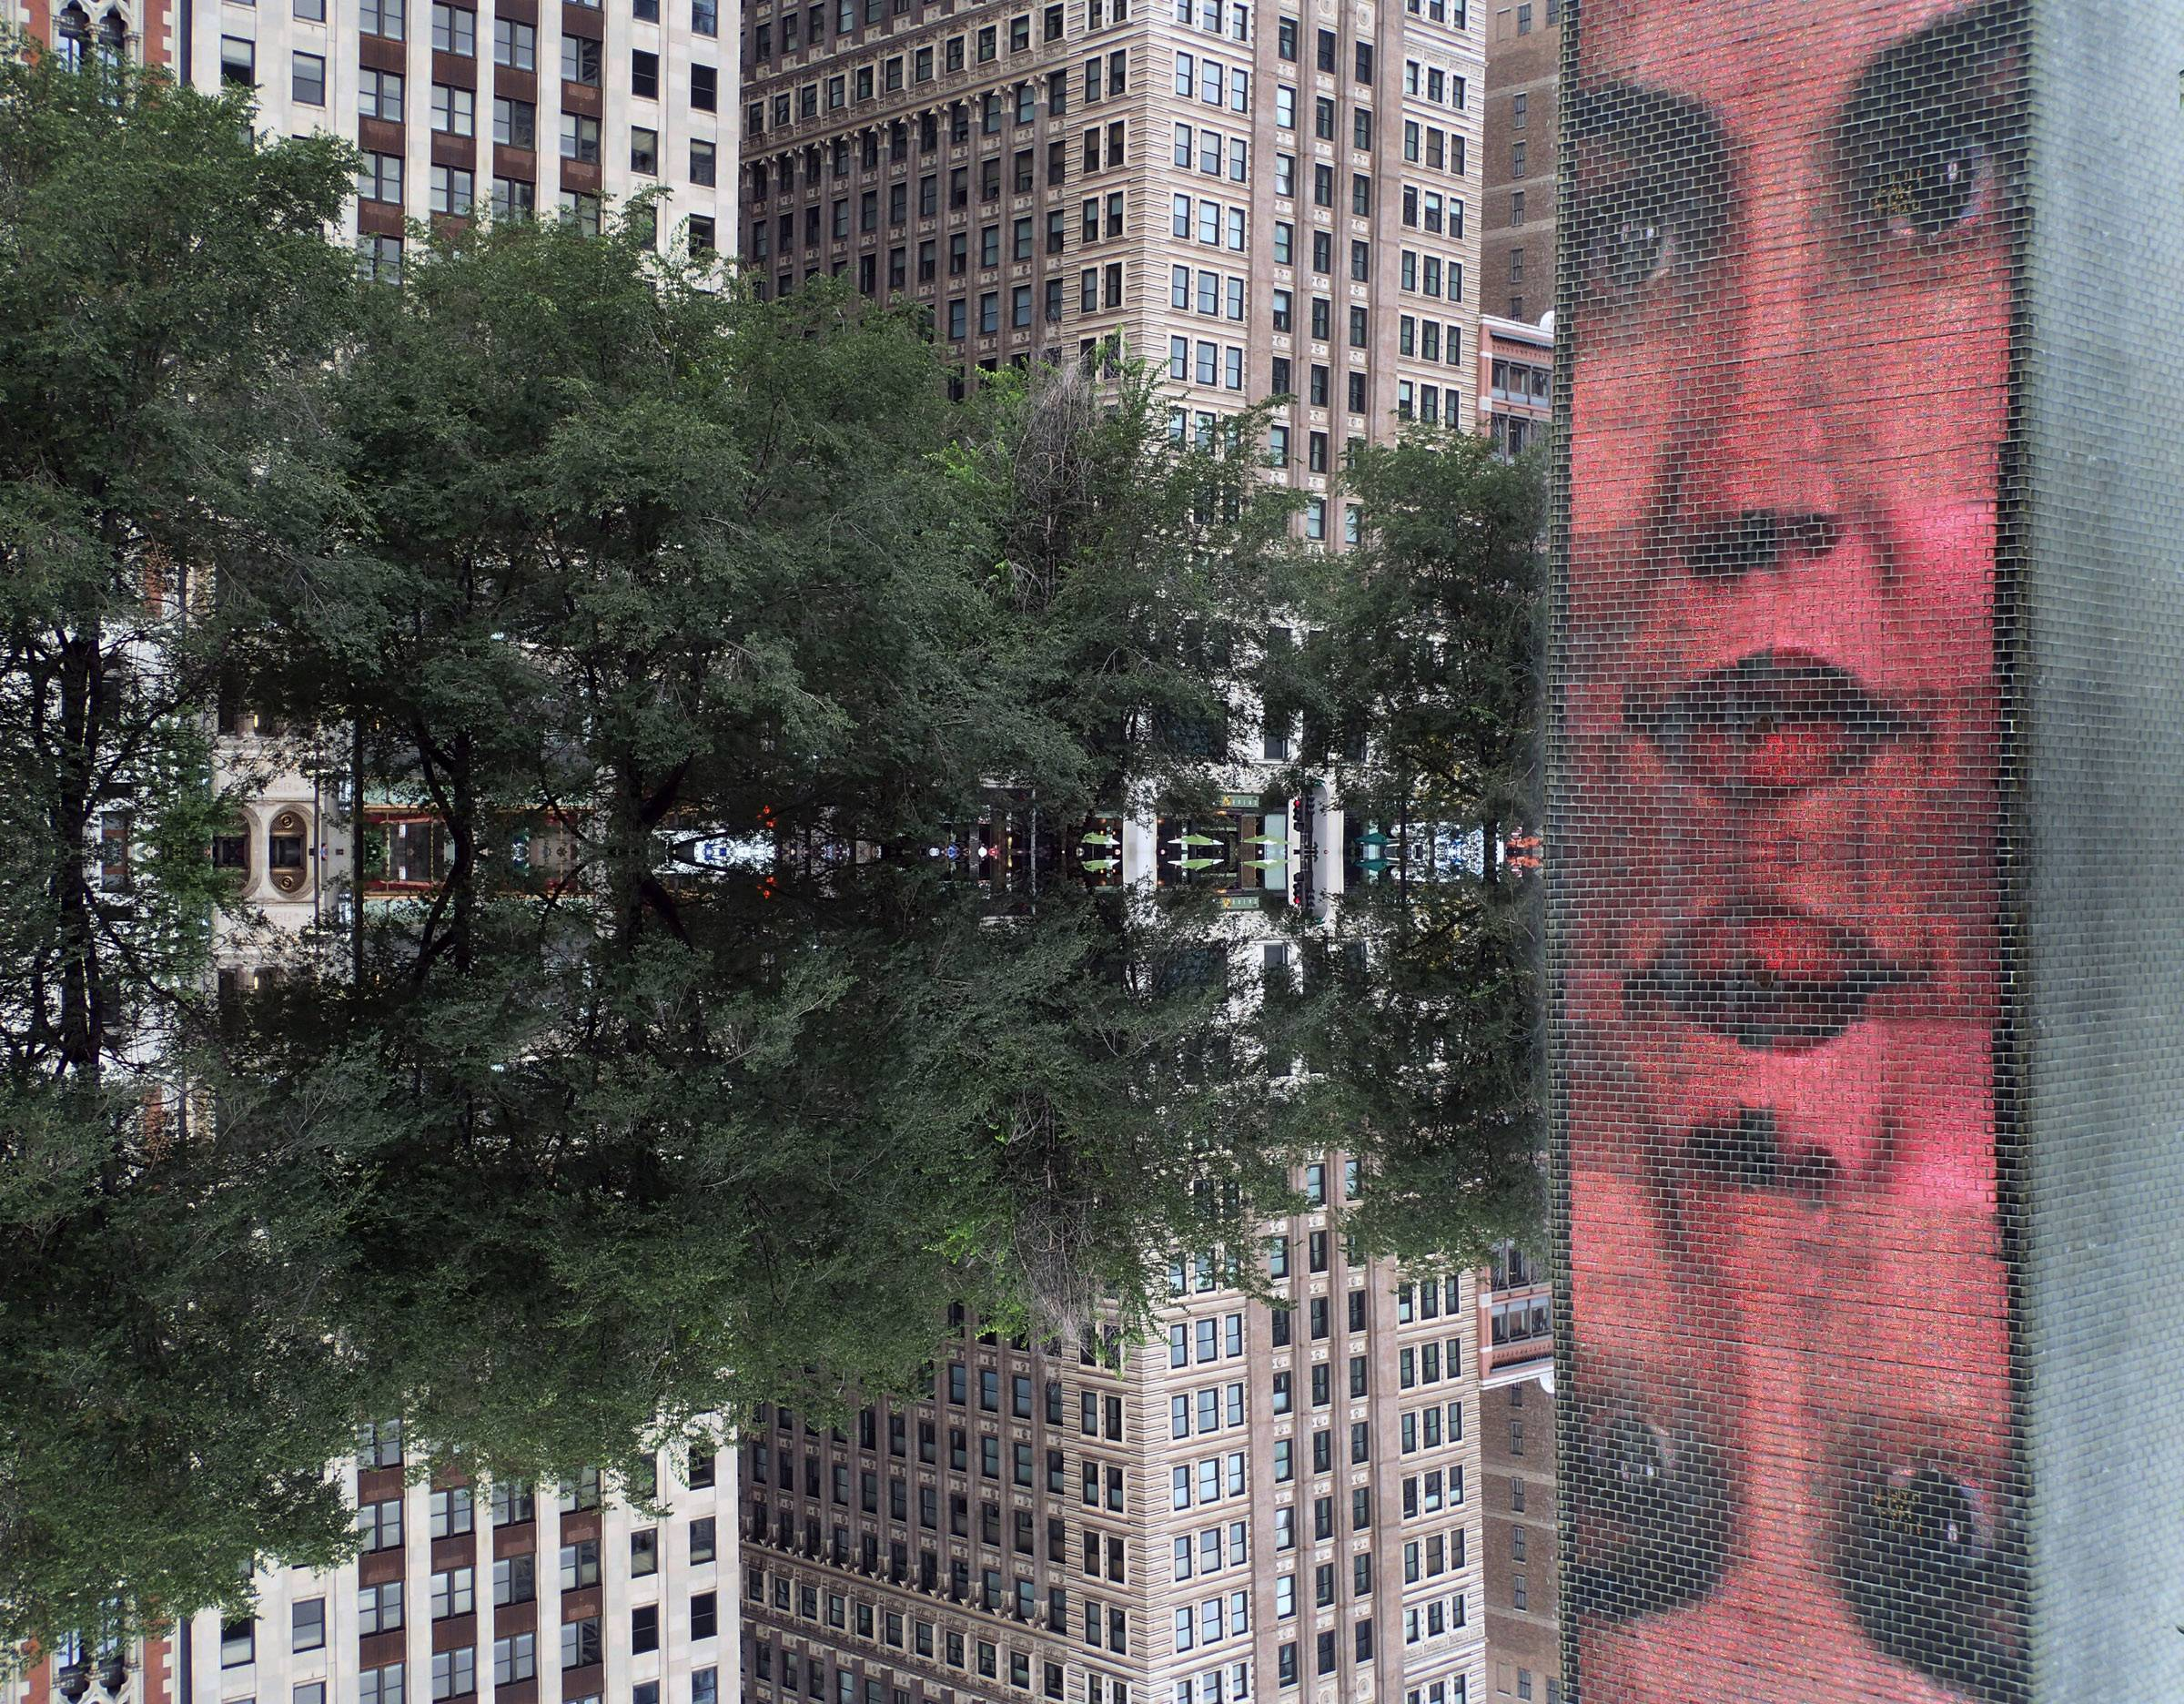 An unusual look with the face looking out toward the trees and buildings in a reflection of Crown Fountain in downtown Chicago.